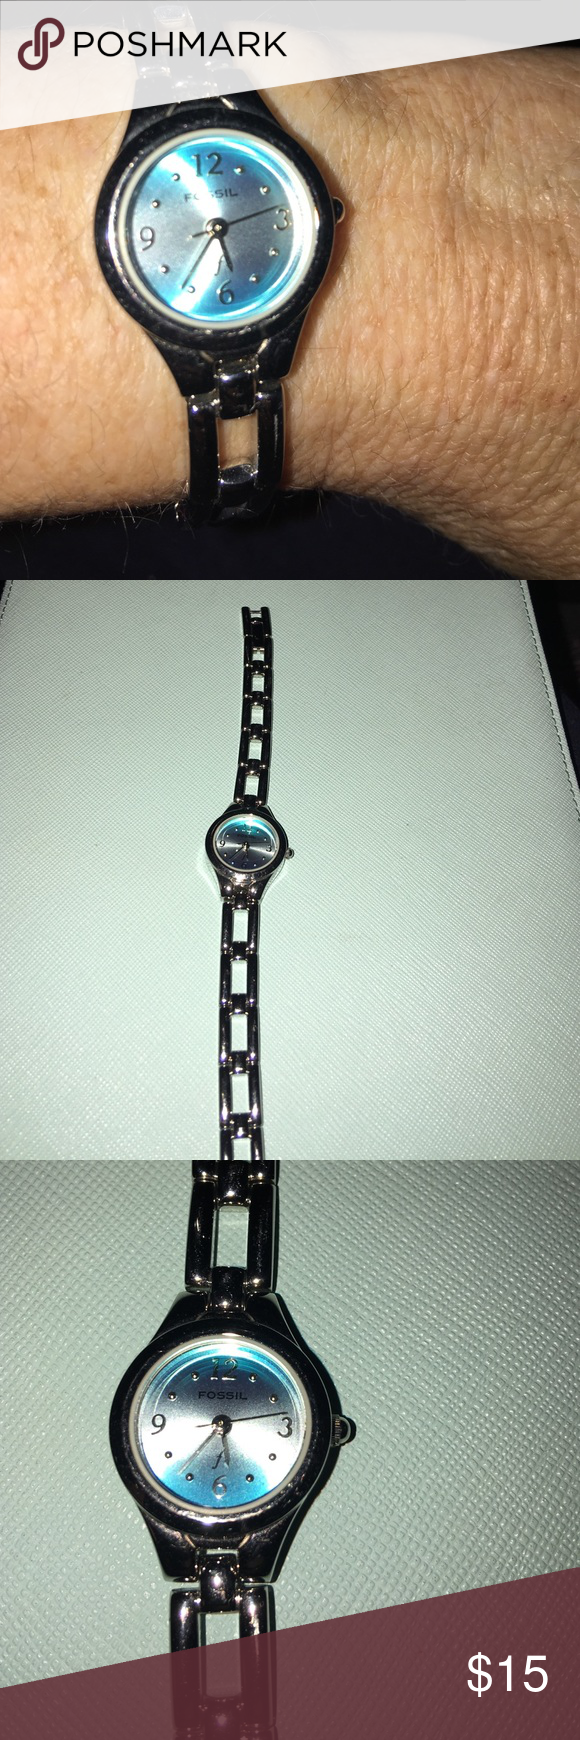 Fossil watch with silver band. Fossil watch with silver band. Needs batteries. No Extra links. Fossil Accessories Watches